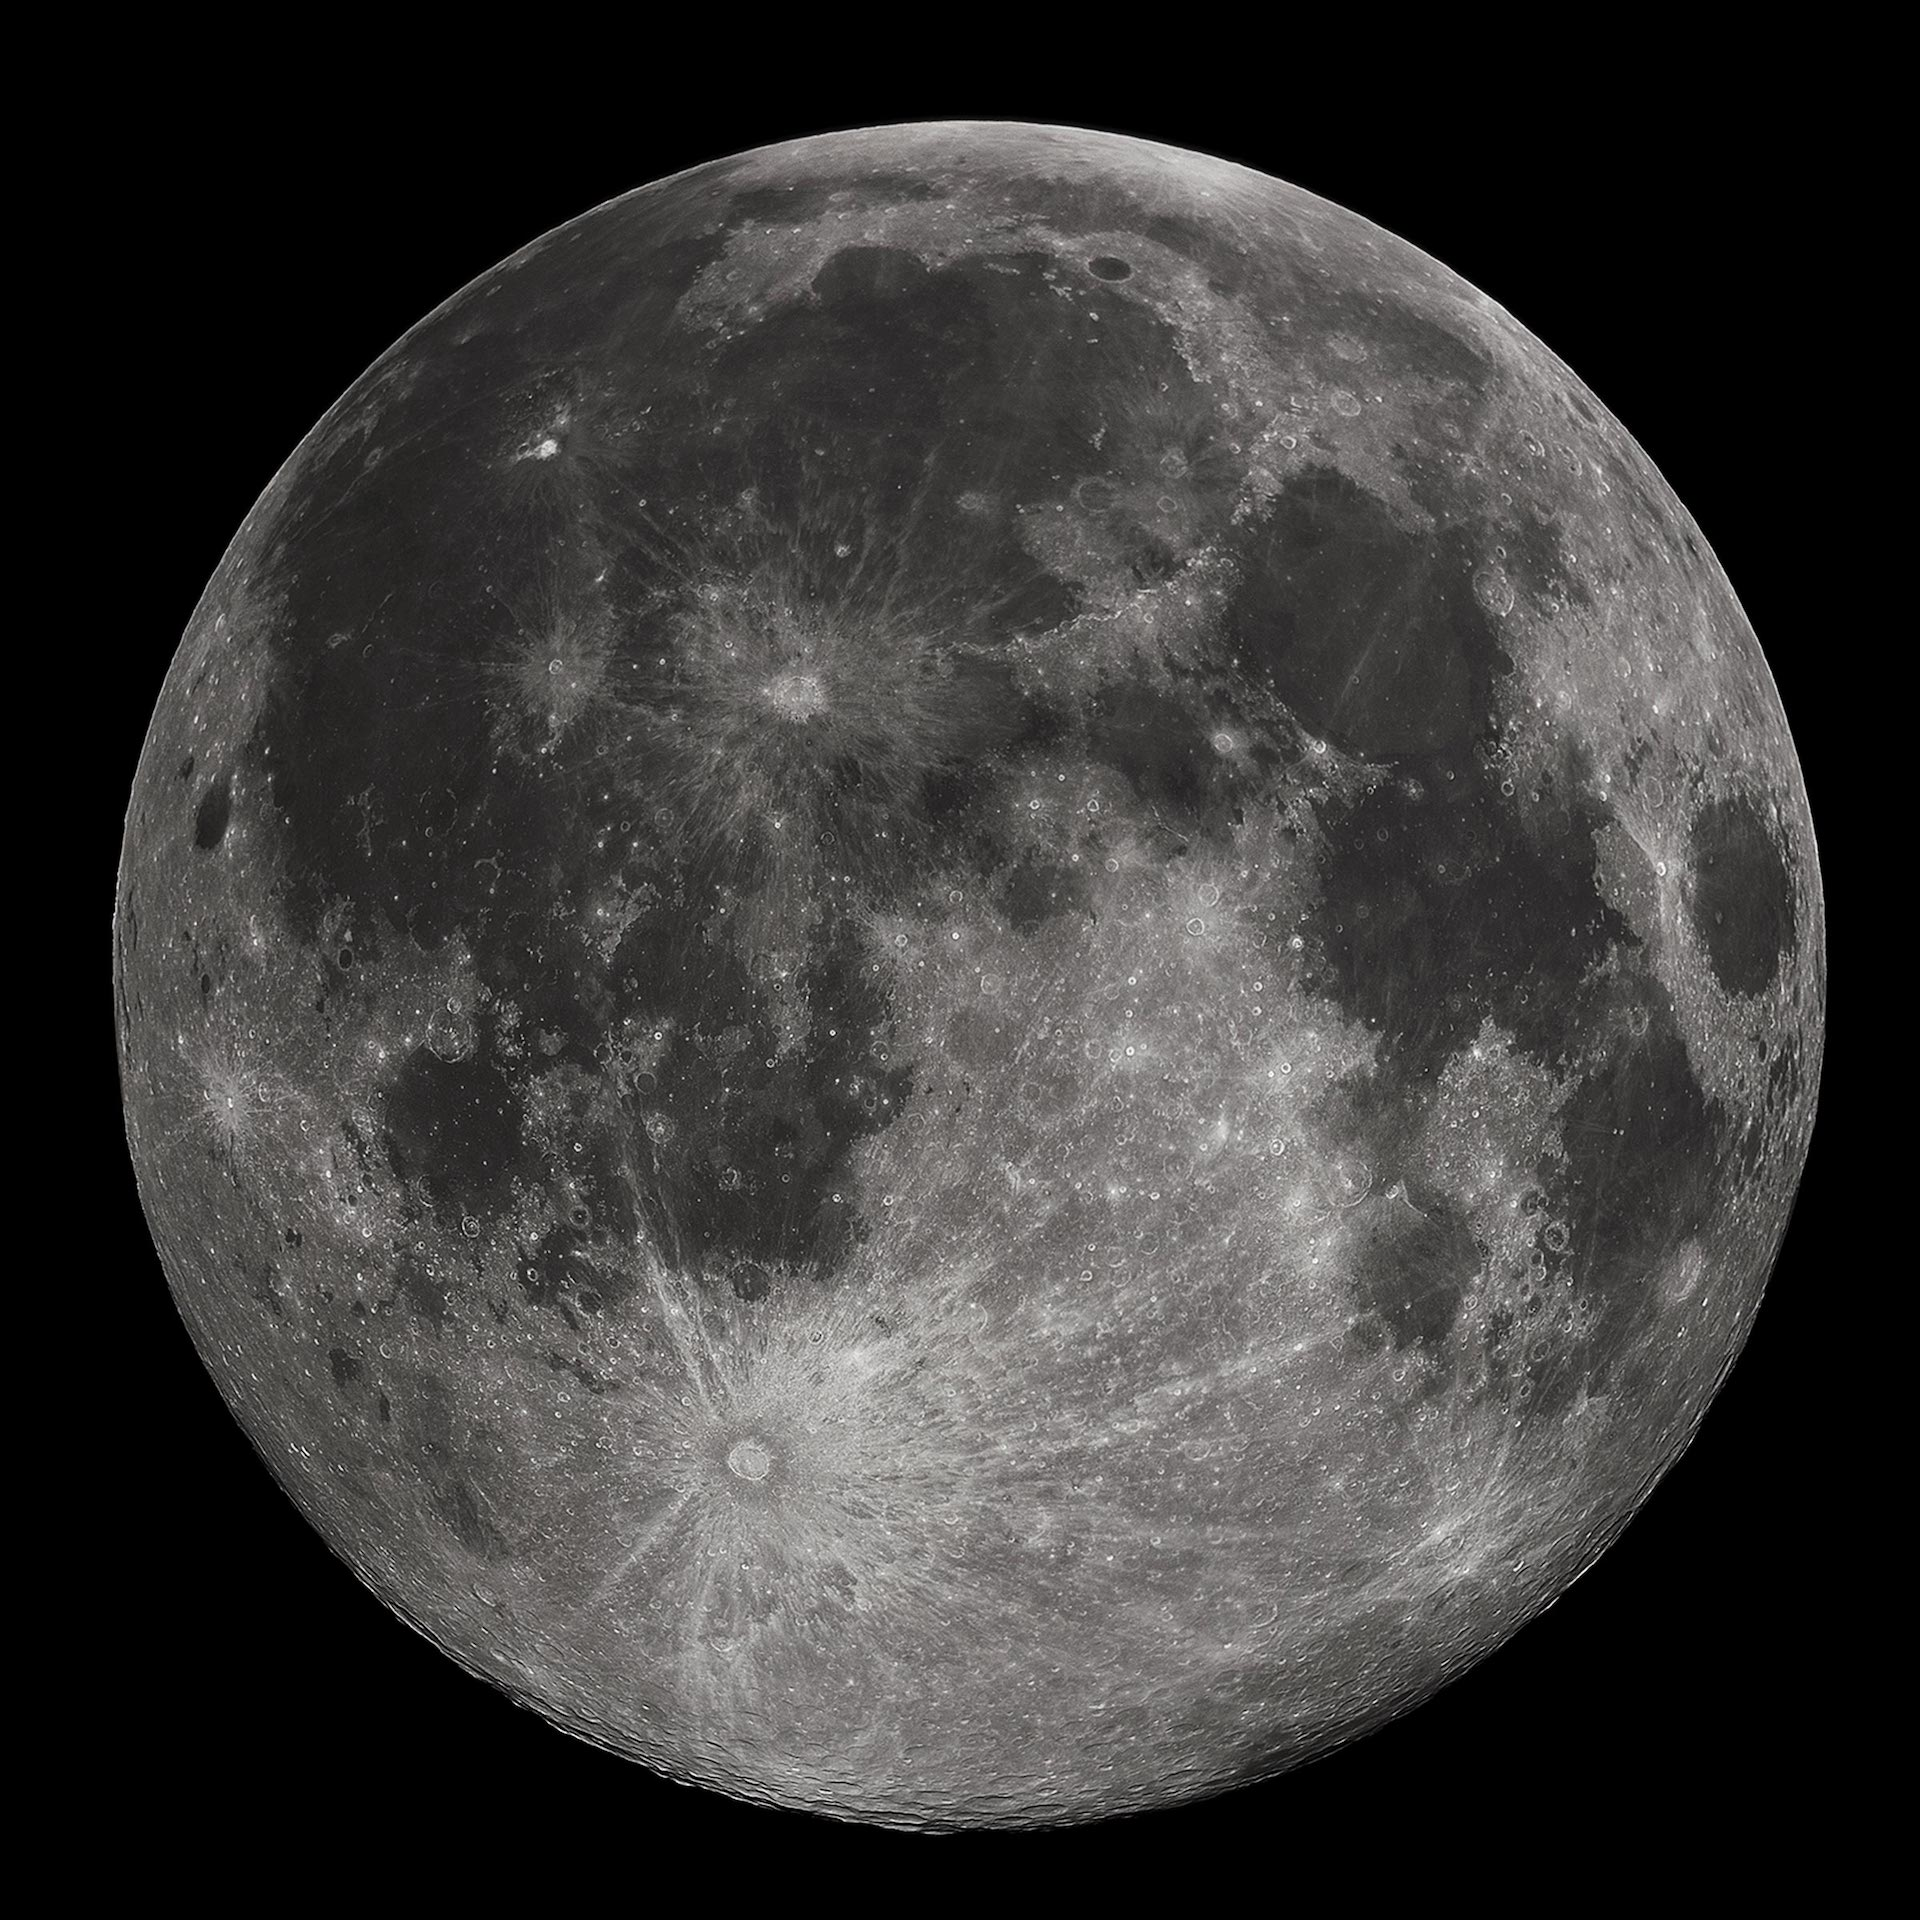 Full moon on black background